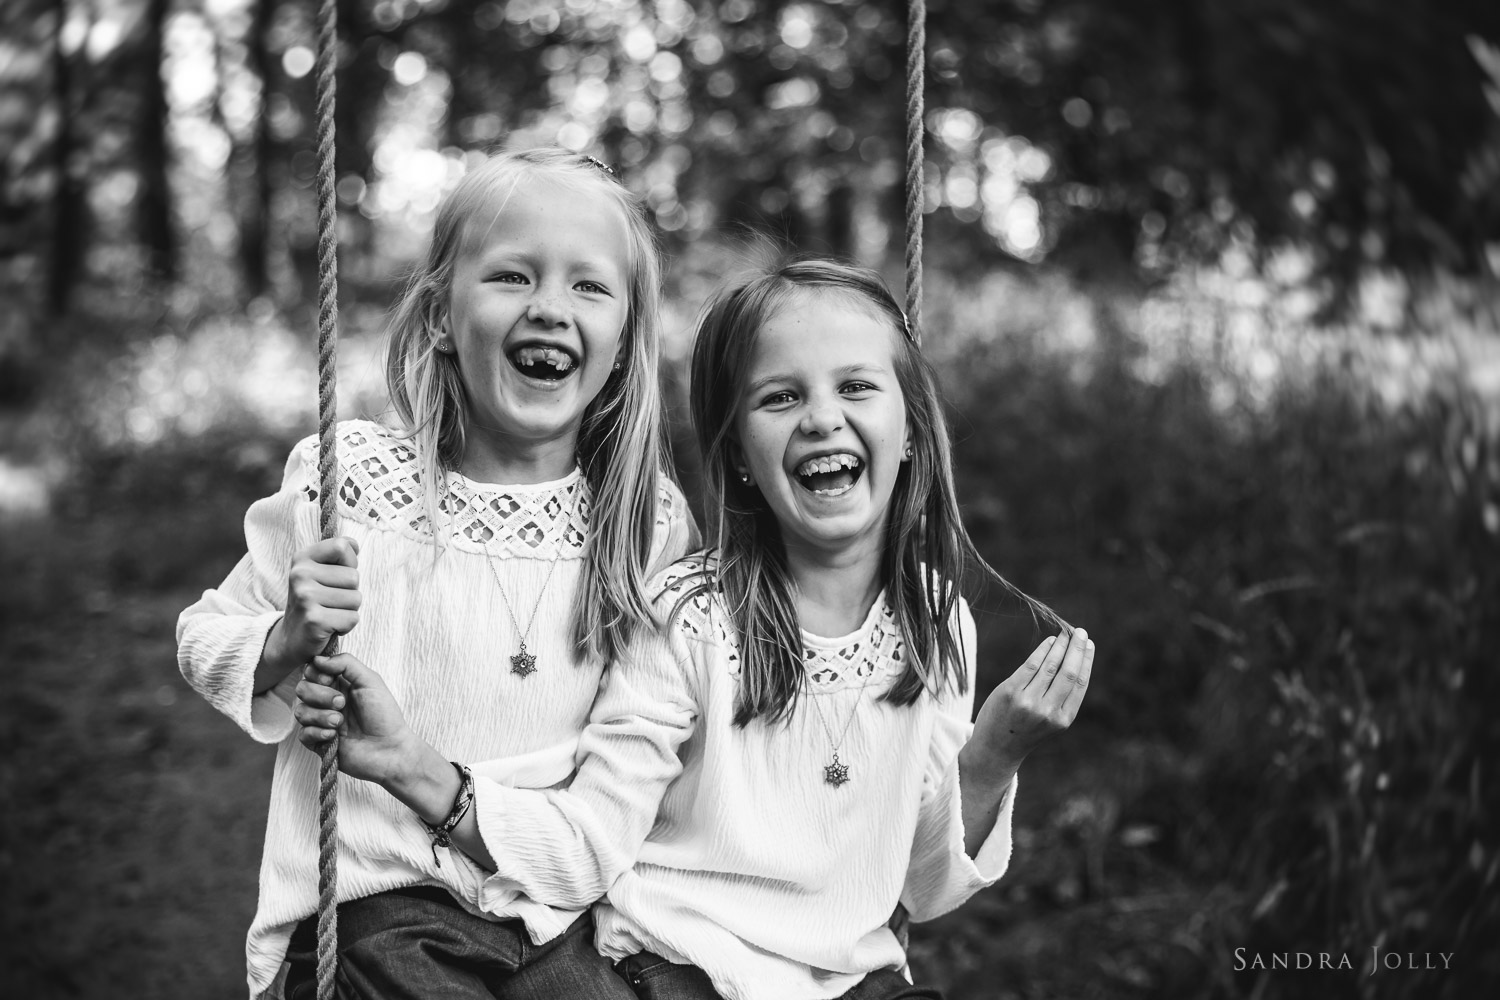 Sisters-on-swing-at-Ulriksdal-Slott.jpg